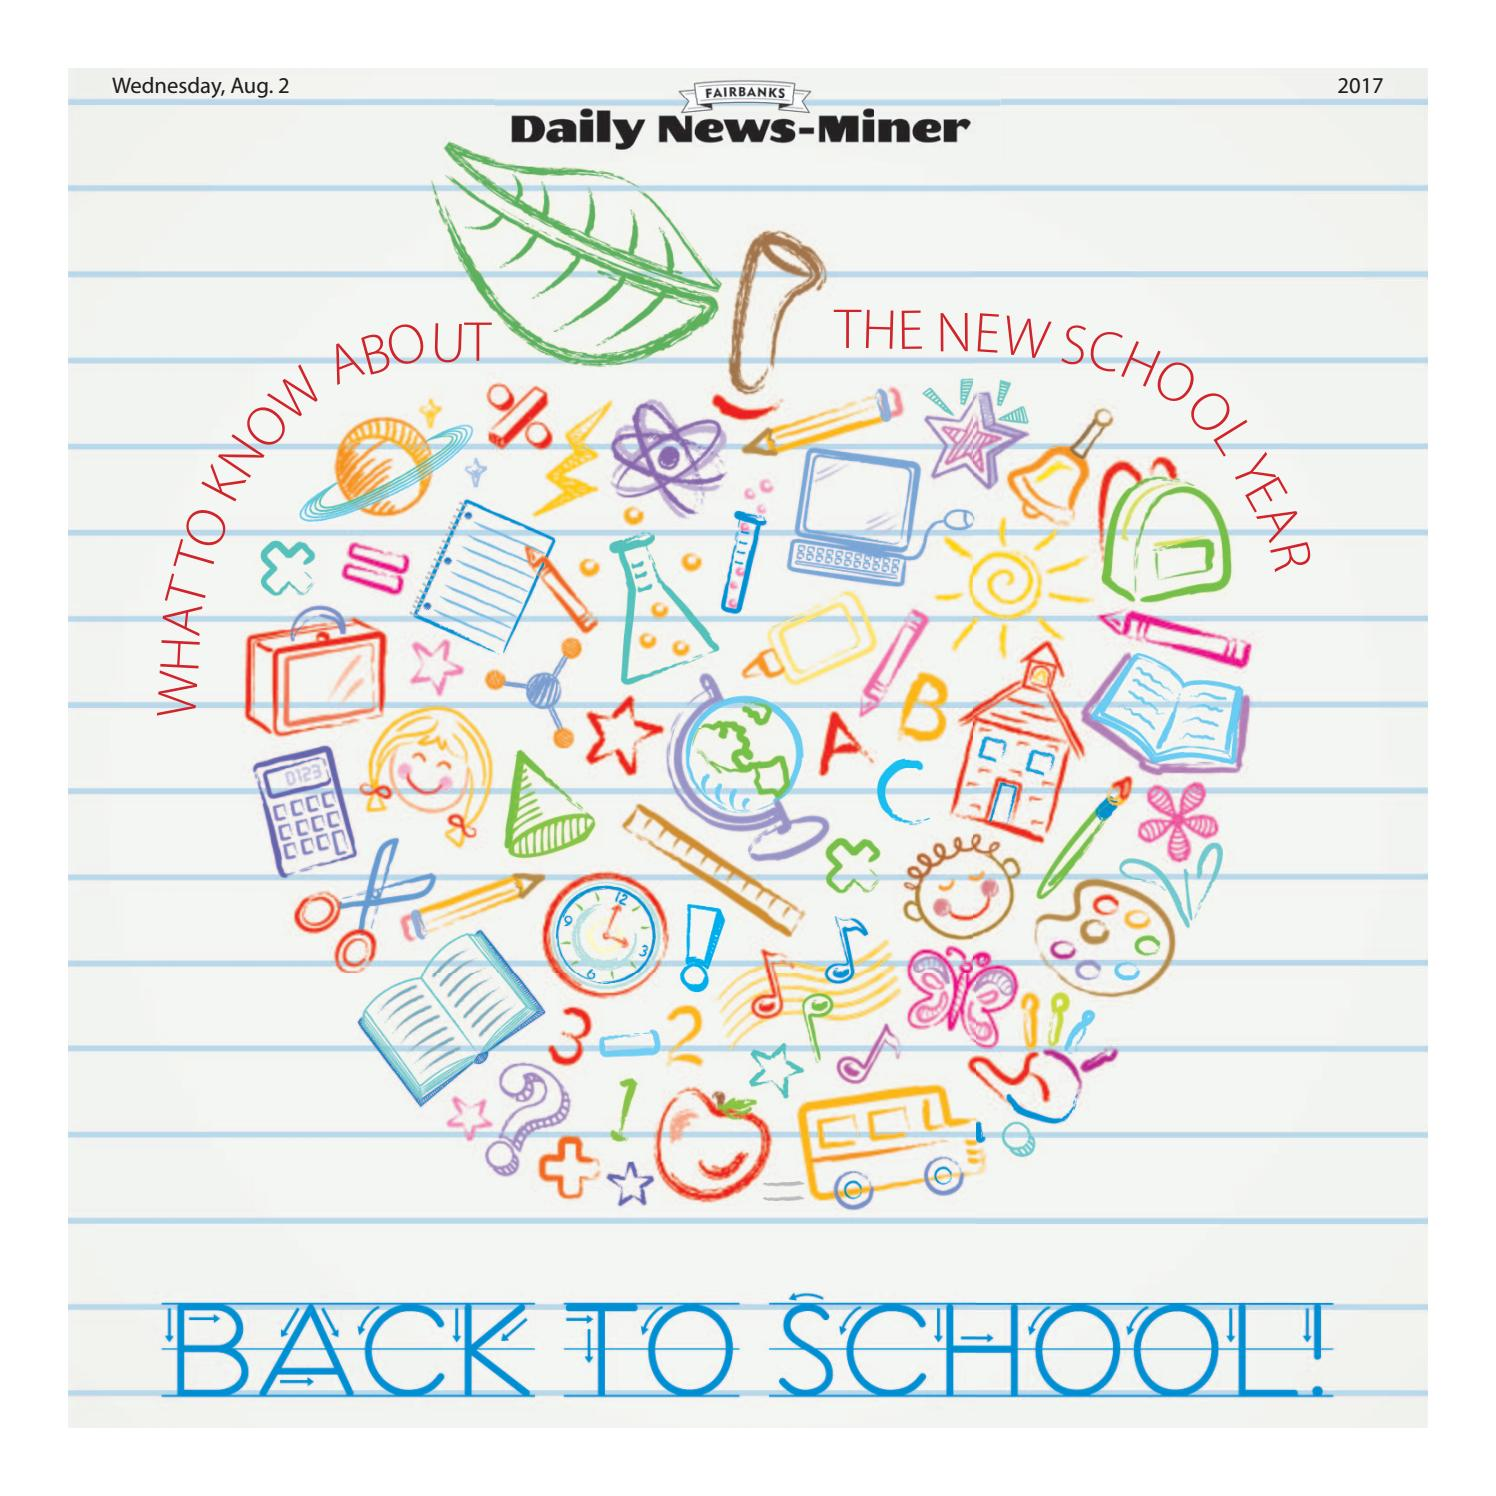 2017 Back to School by Fairbanks Daily News-Miner - issuu